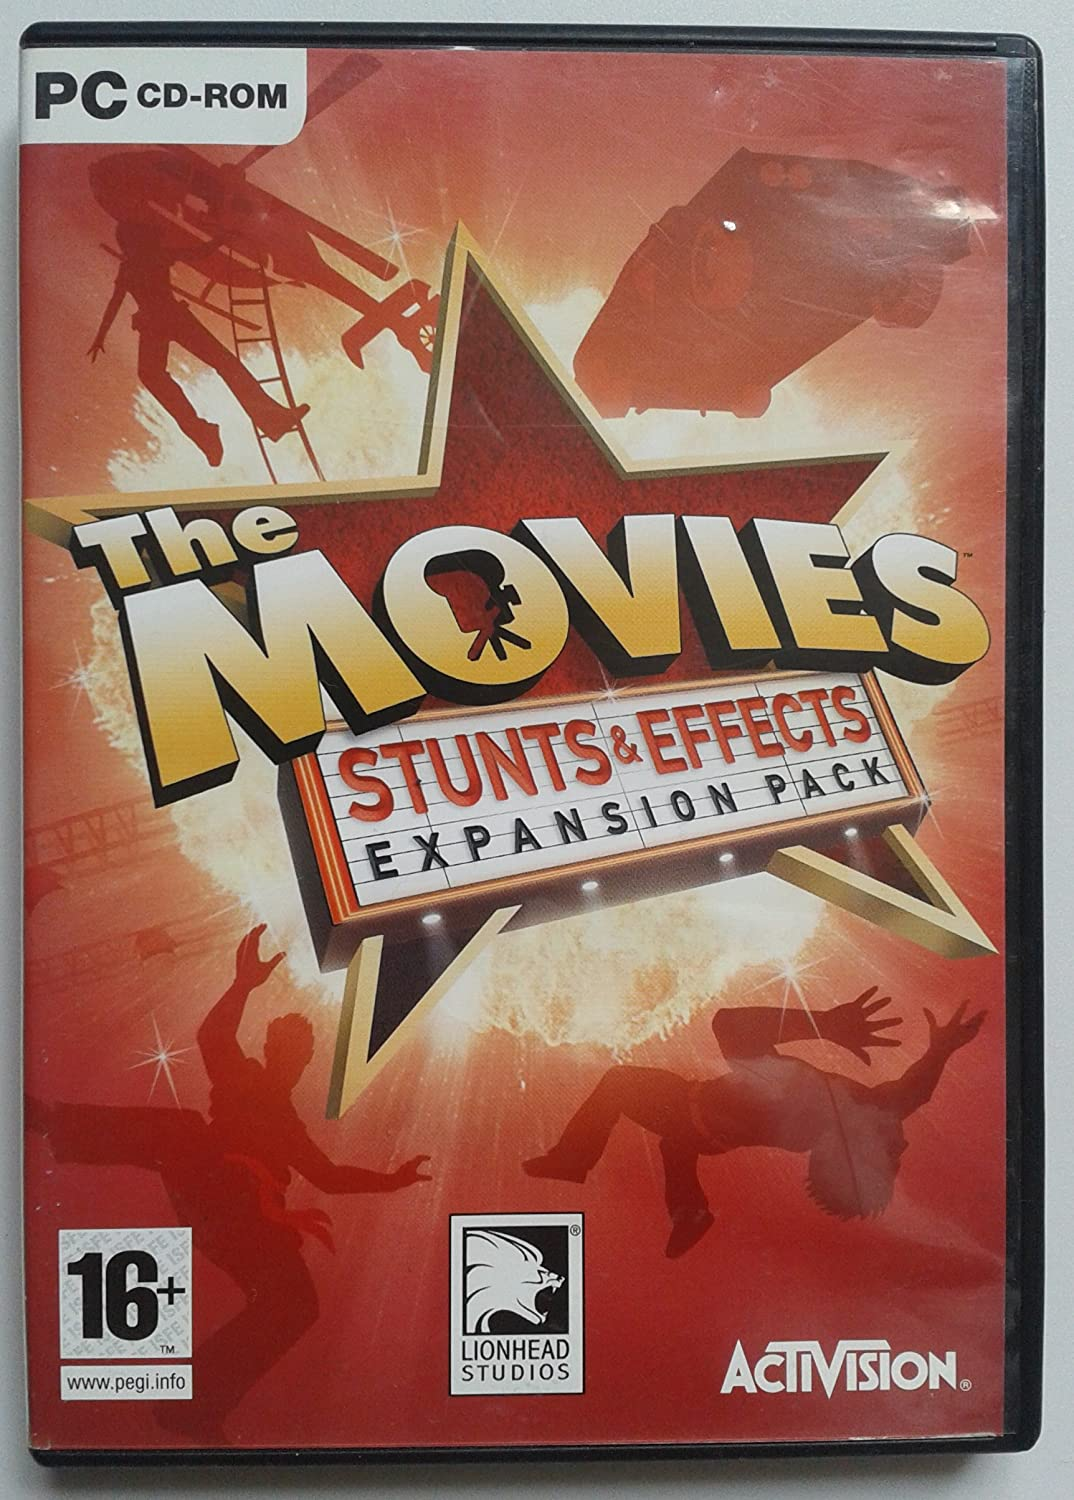 The Movies: Stunts & Effects Expansion Pack (PC CD-ROM): Amazon.es ...